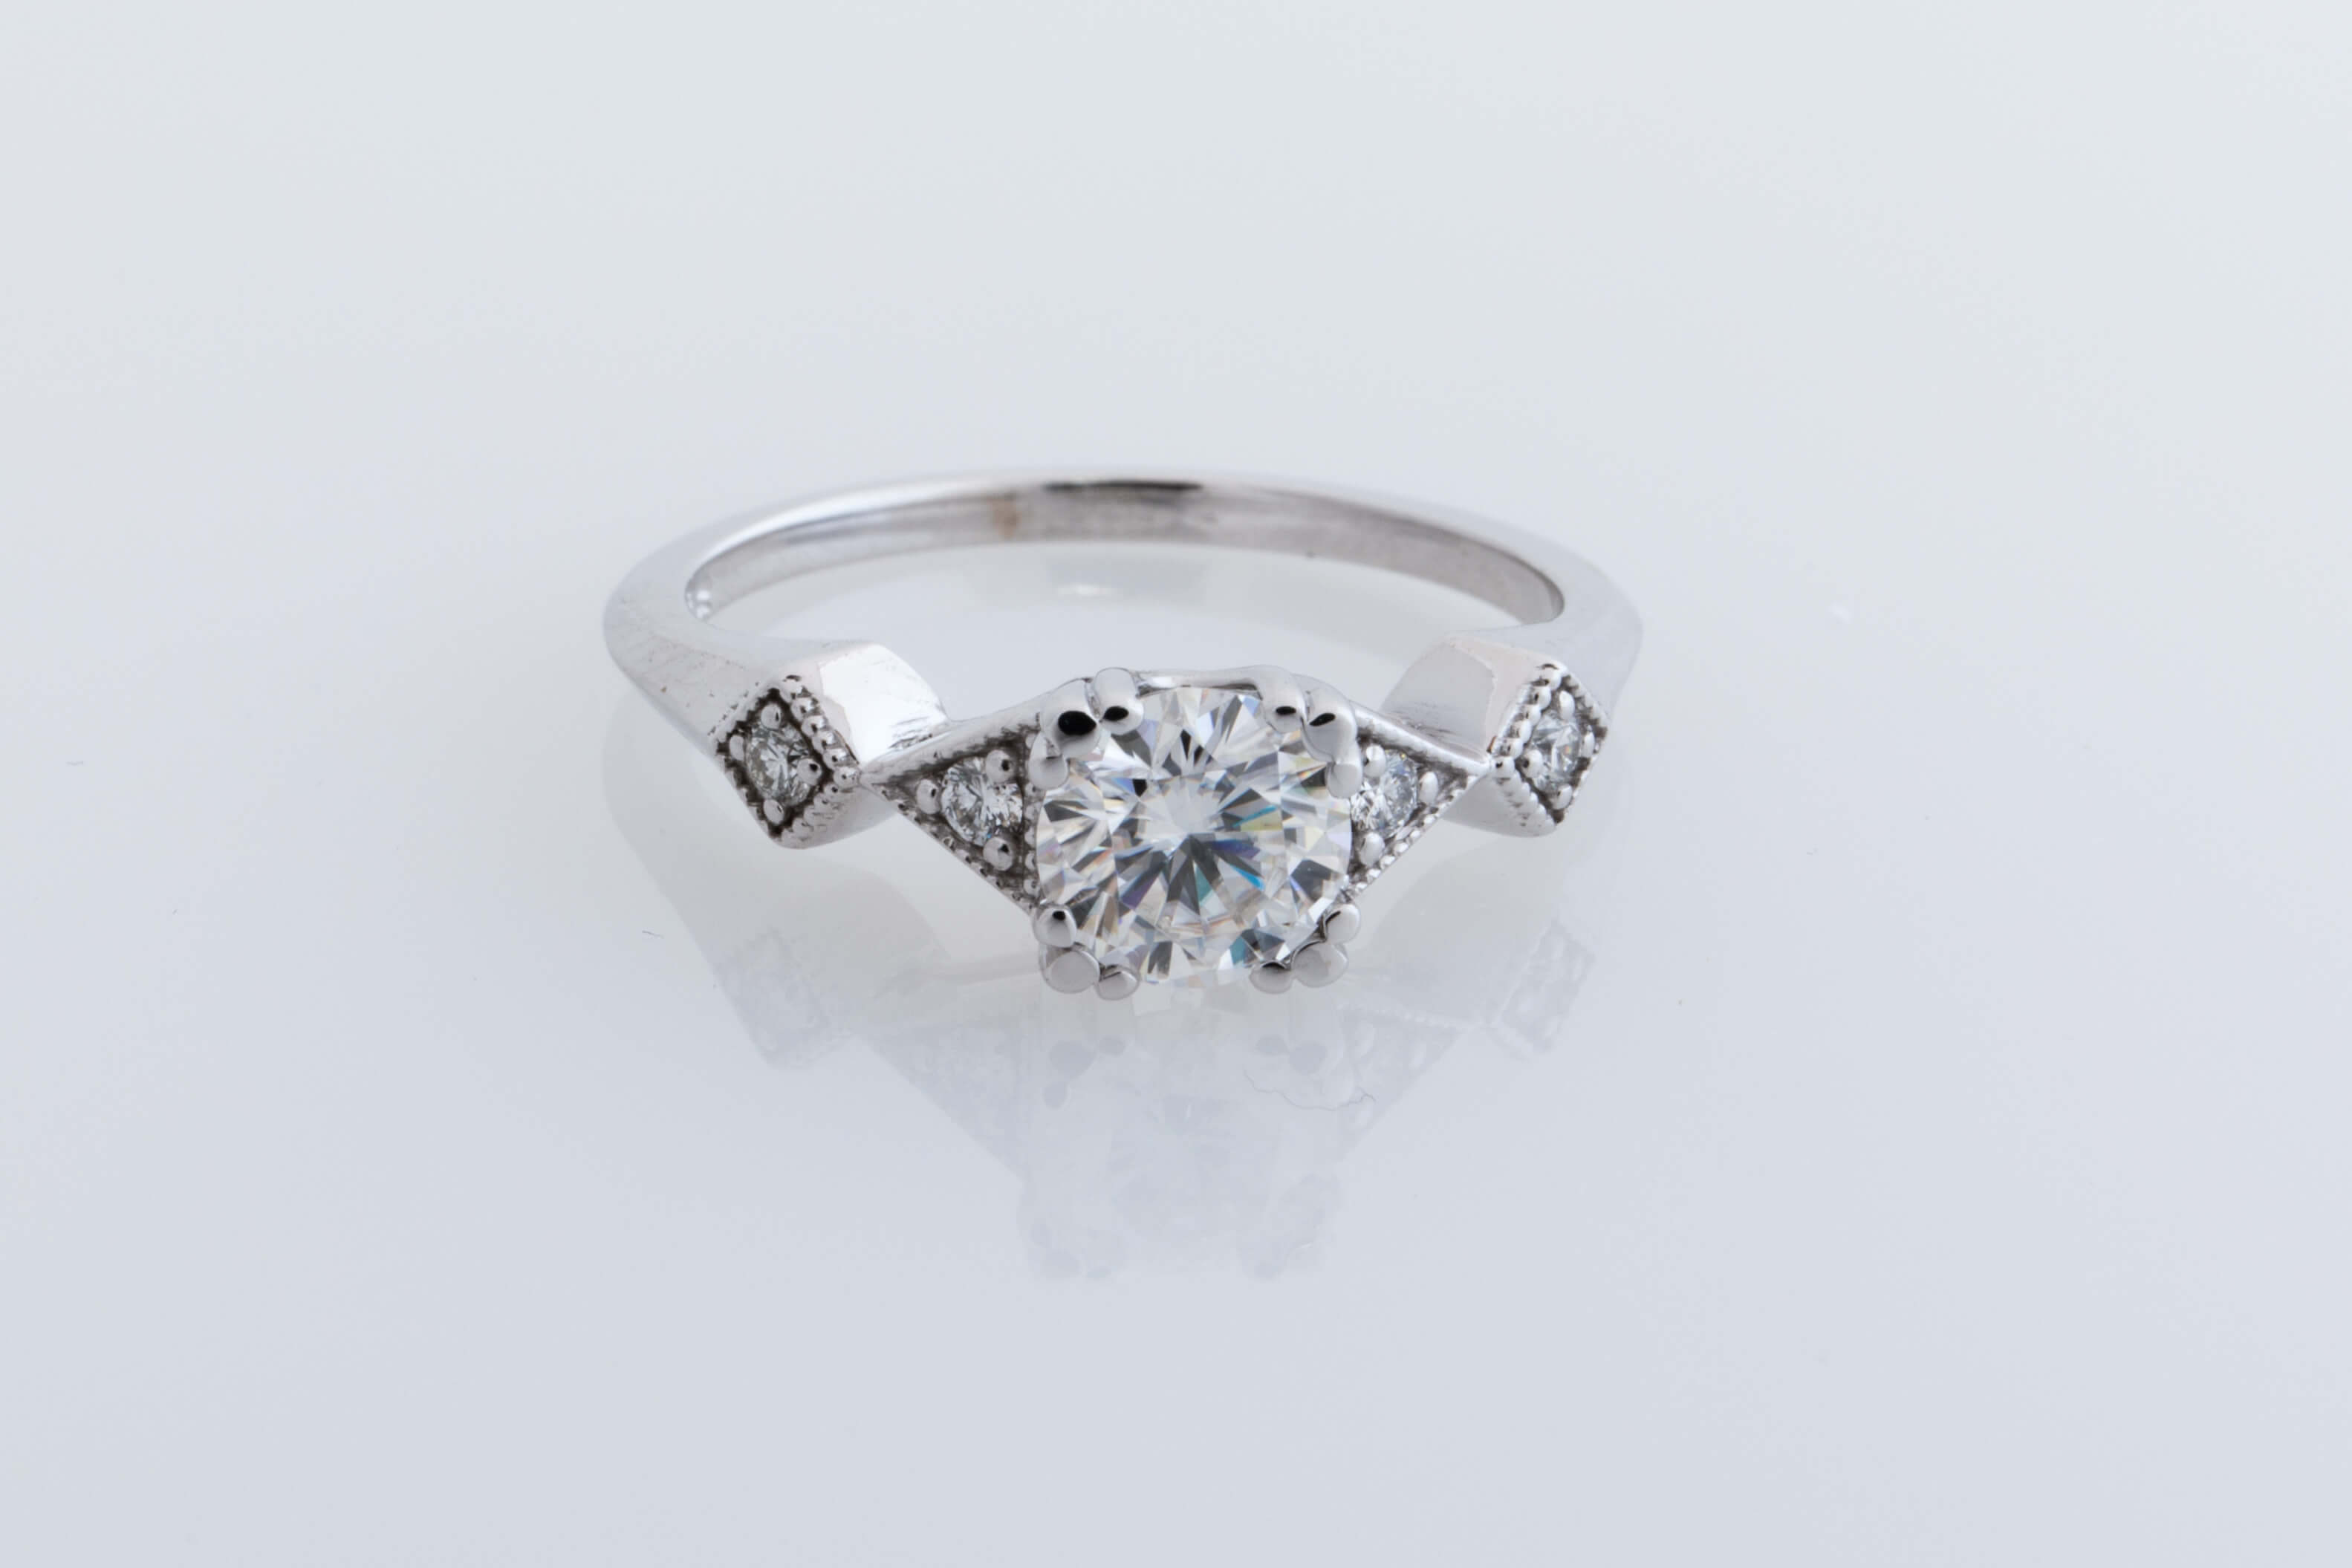 products a wedding engagement mount diamond square semi round ring rings upon setting once